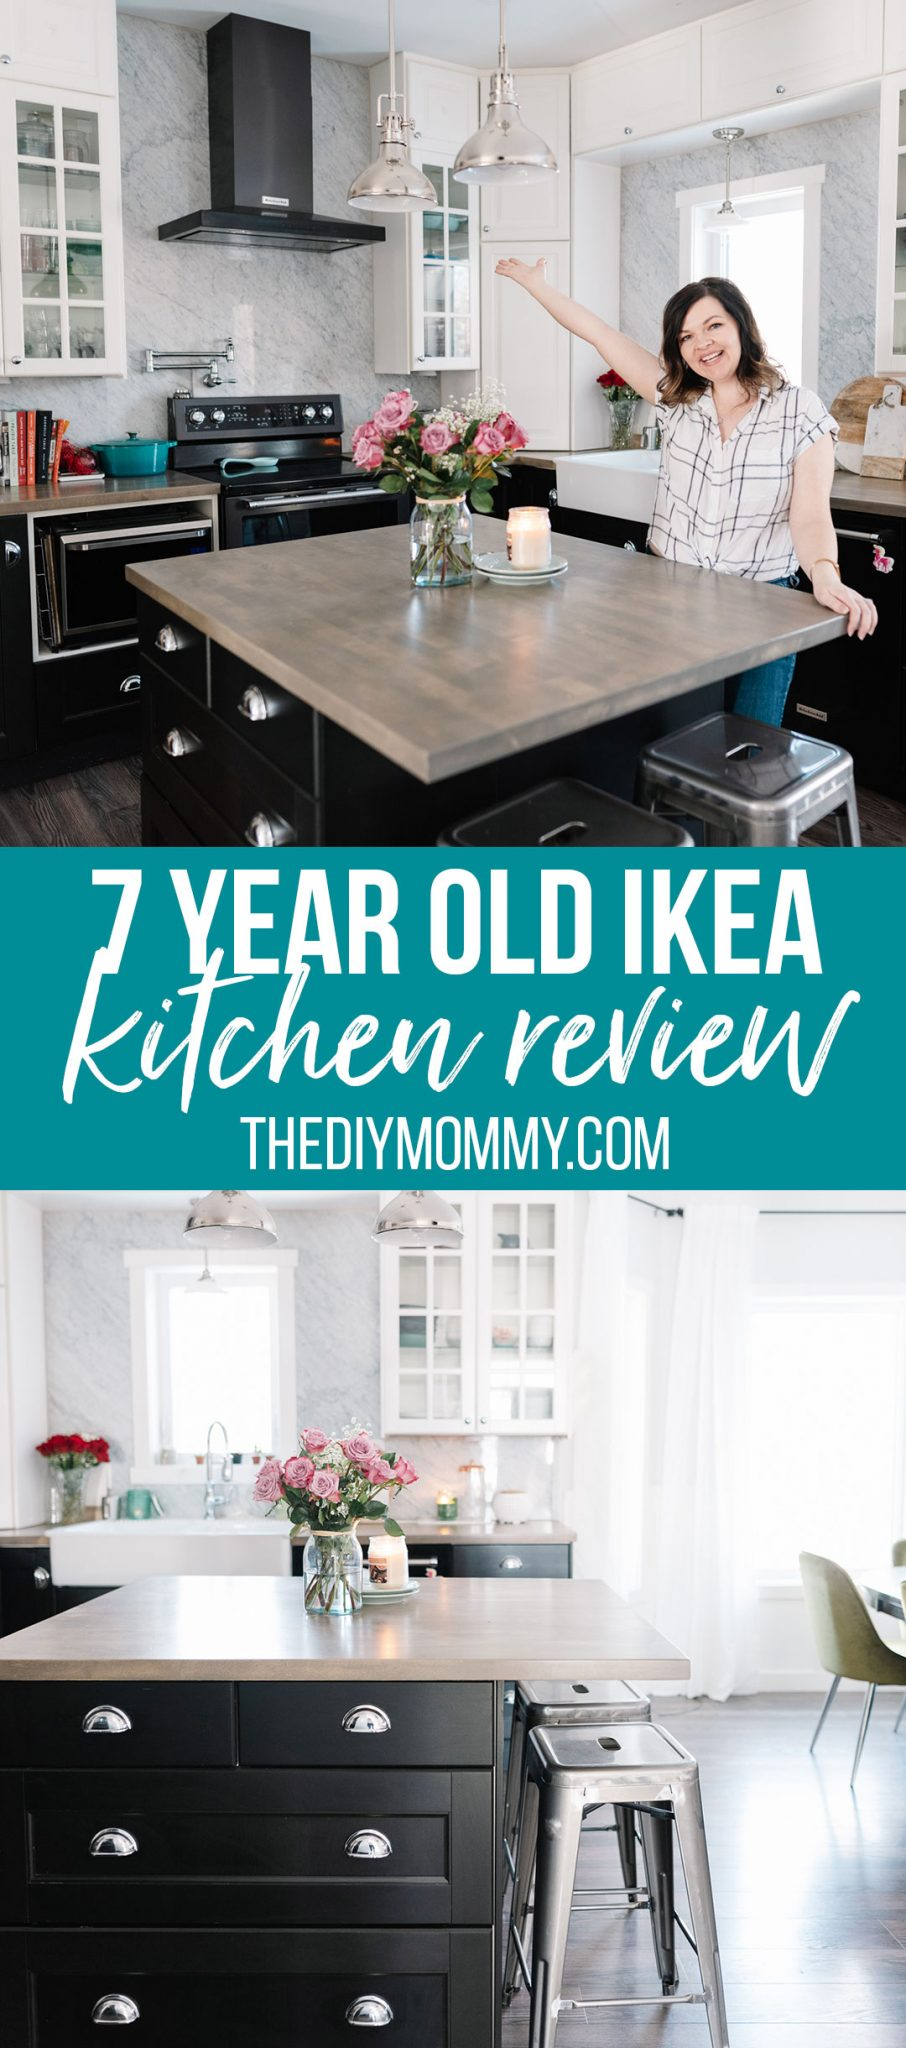 Review of a 7 year old Ikea kitchen